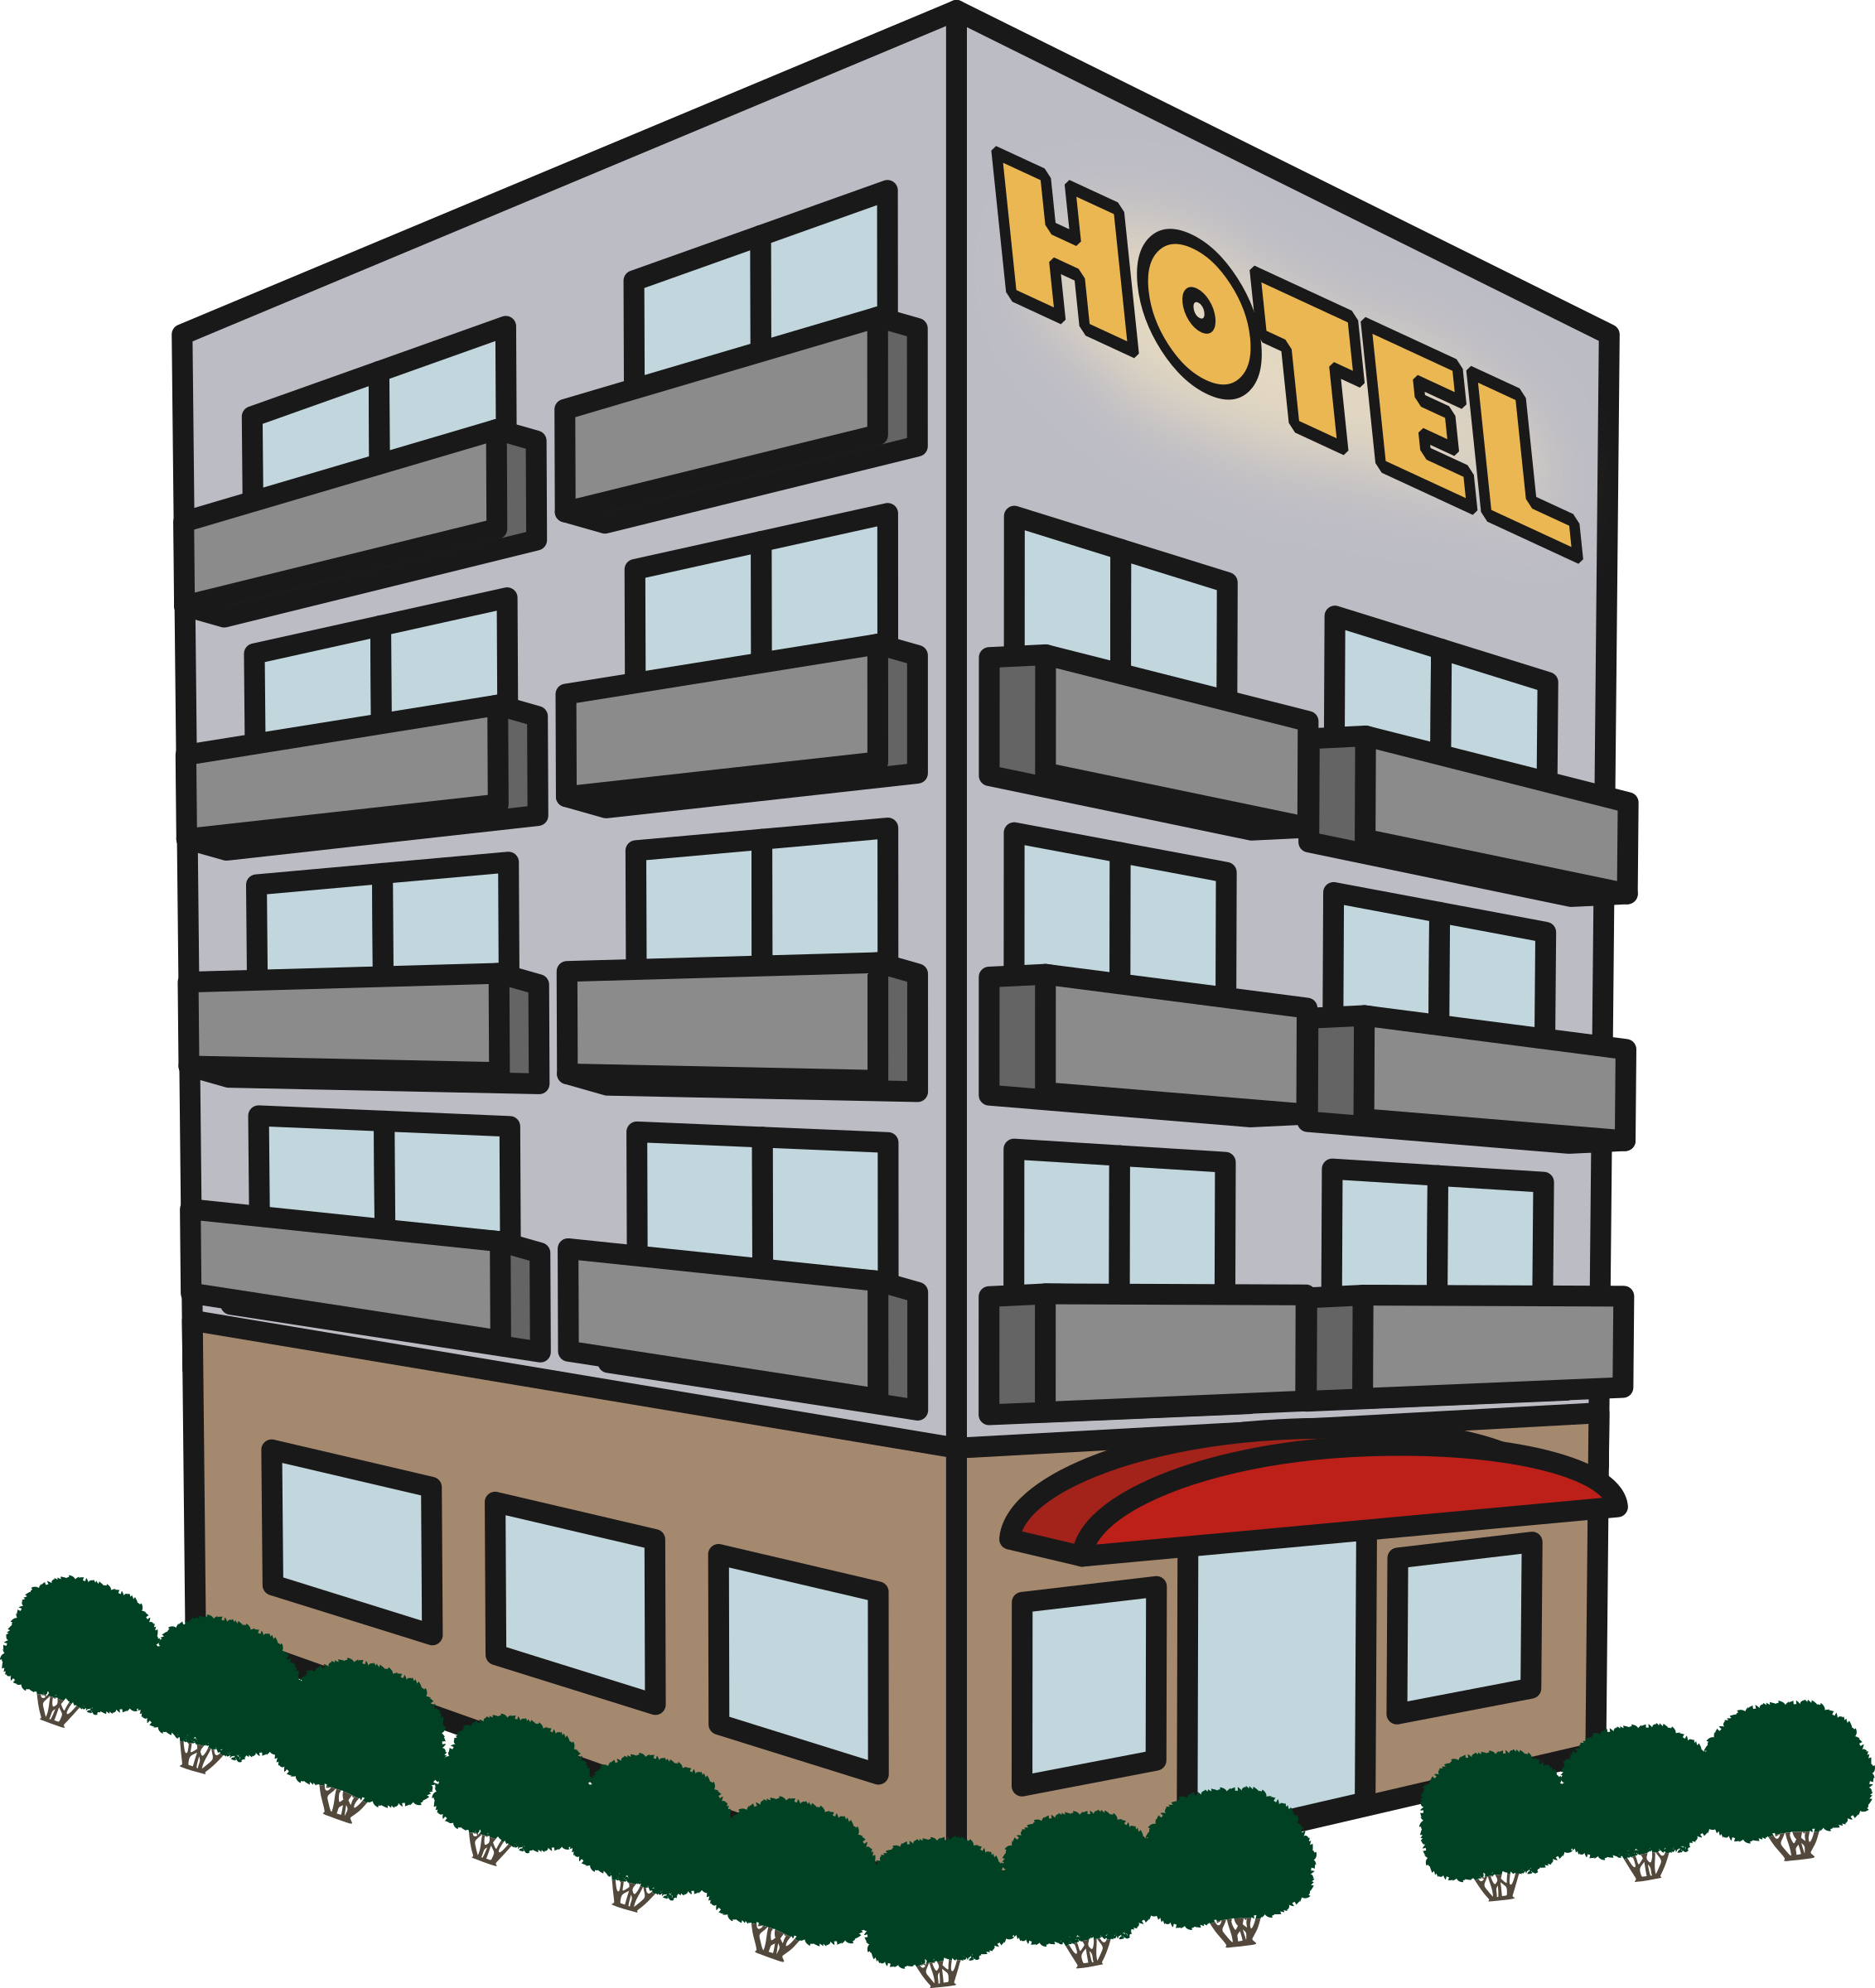 Hotel clipart hotel building, Hotel hotel building.